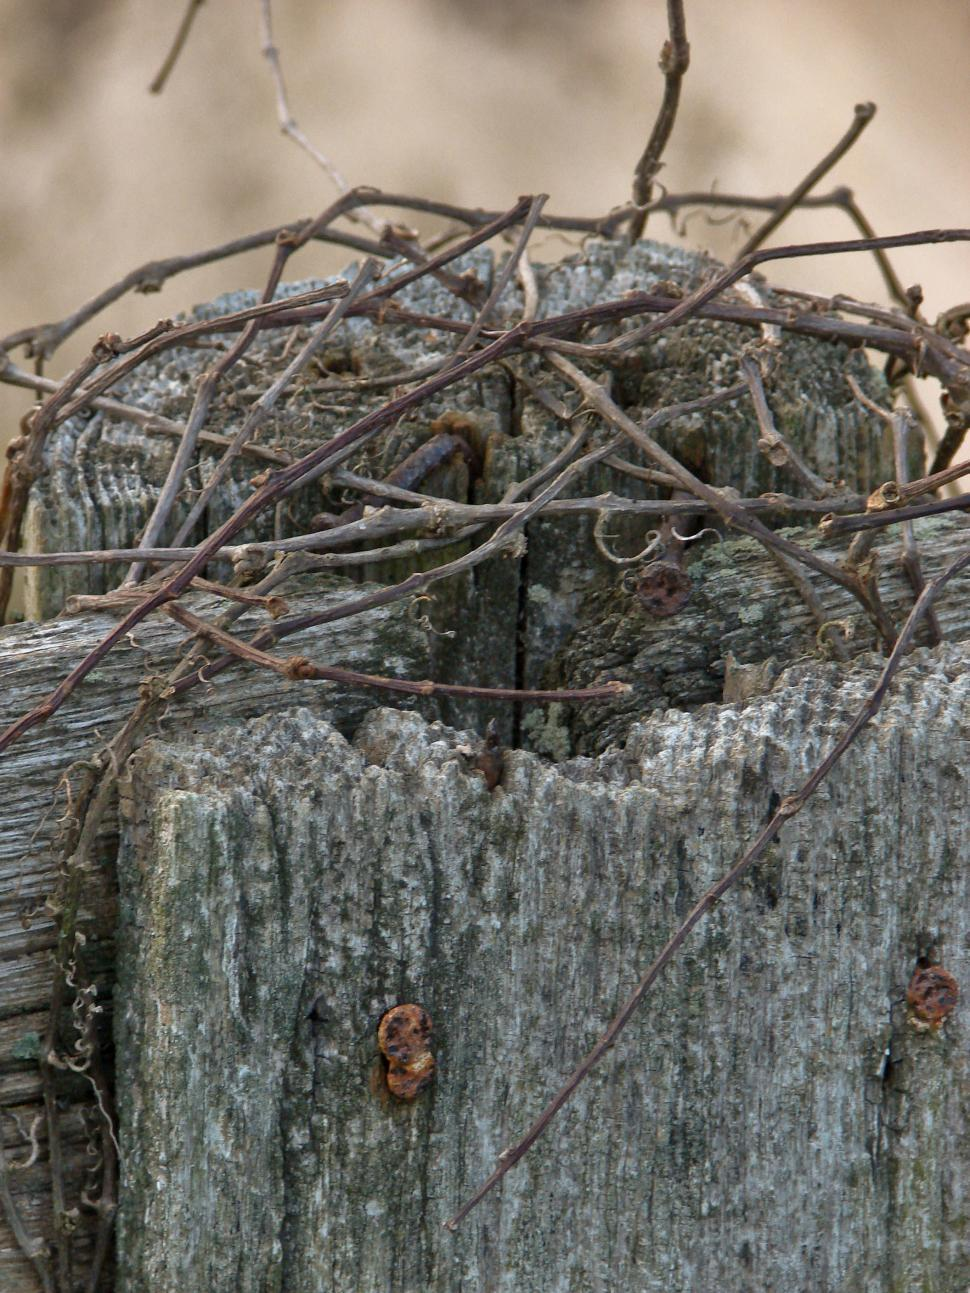 Download Free Stock HD Photo of Fency, vine, nailFence, Nails, Vine 2009 - YS, OH Online